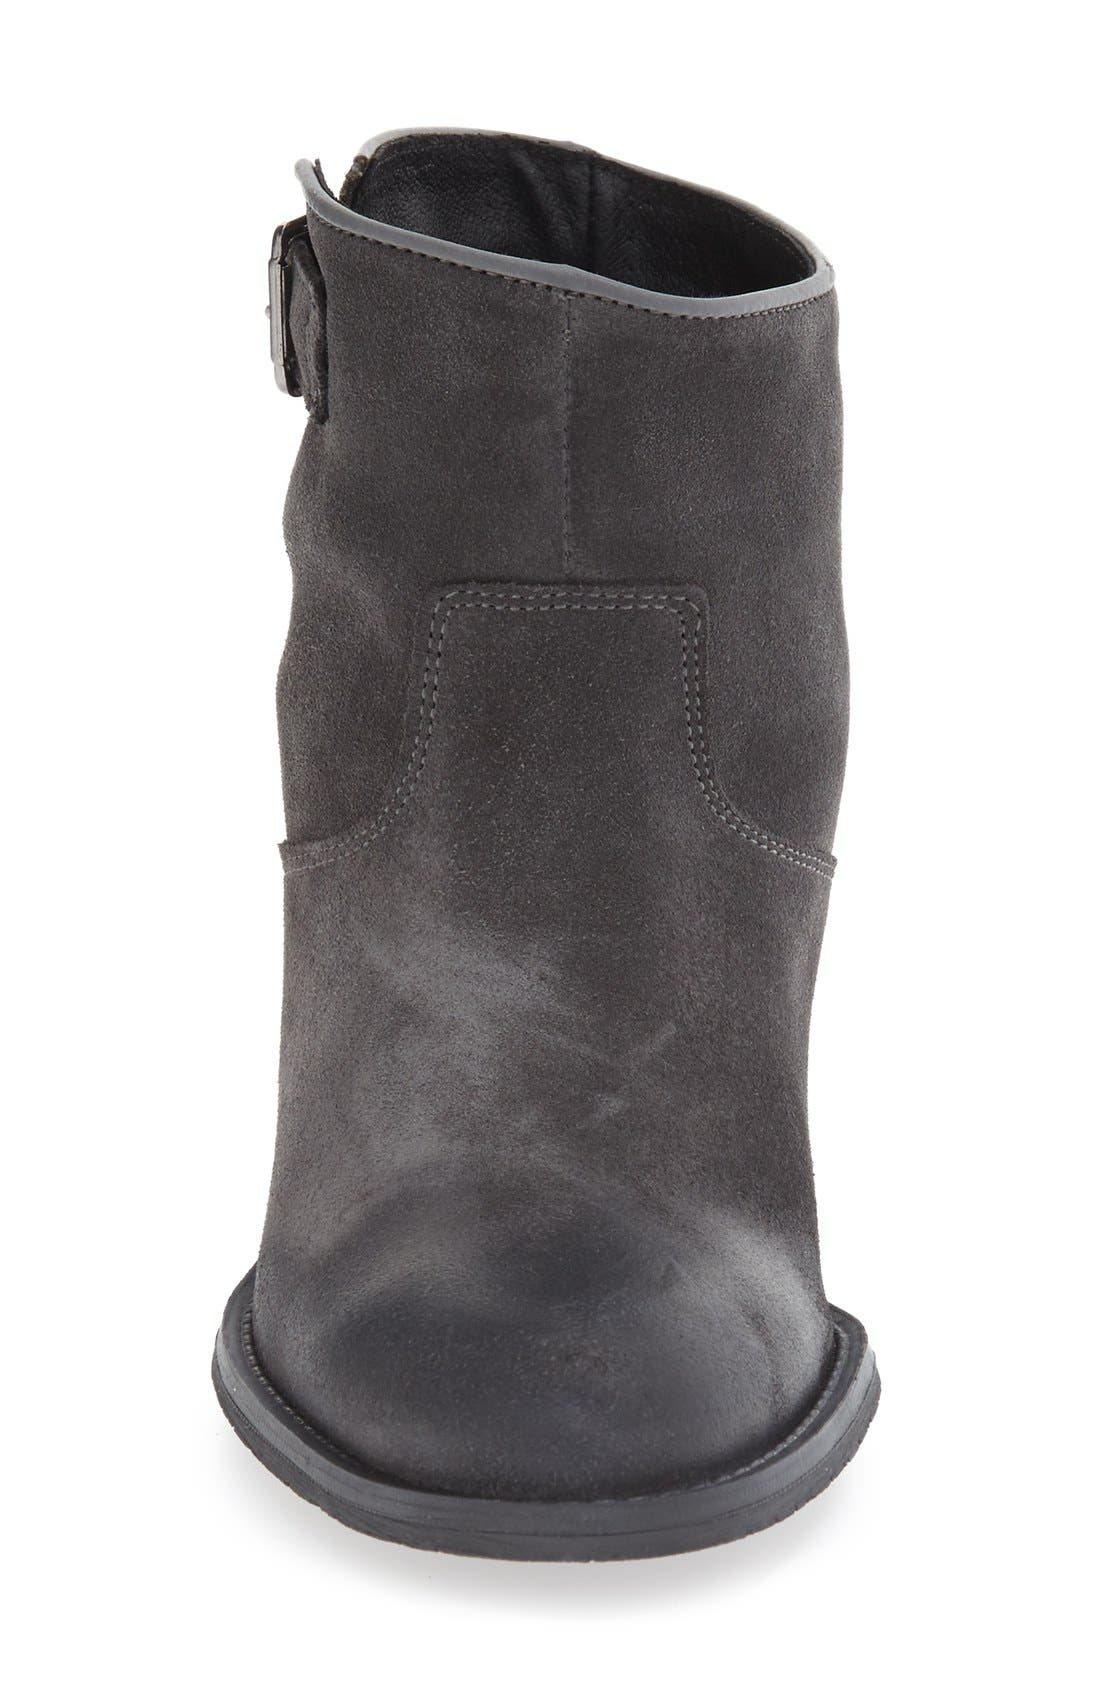 'Ramona' Waterproof Bootie,                             Alternate thumbnail 3, color,                             Grey Oil Suede